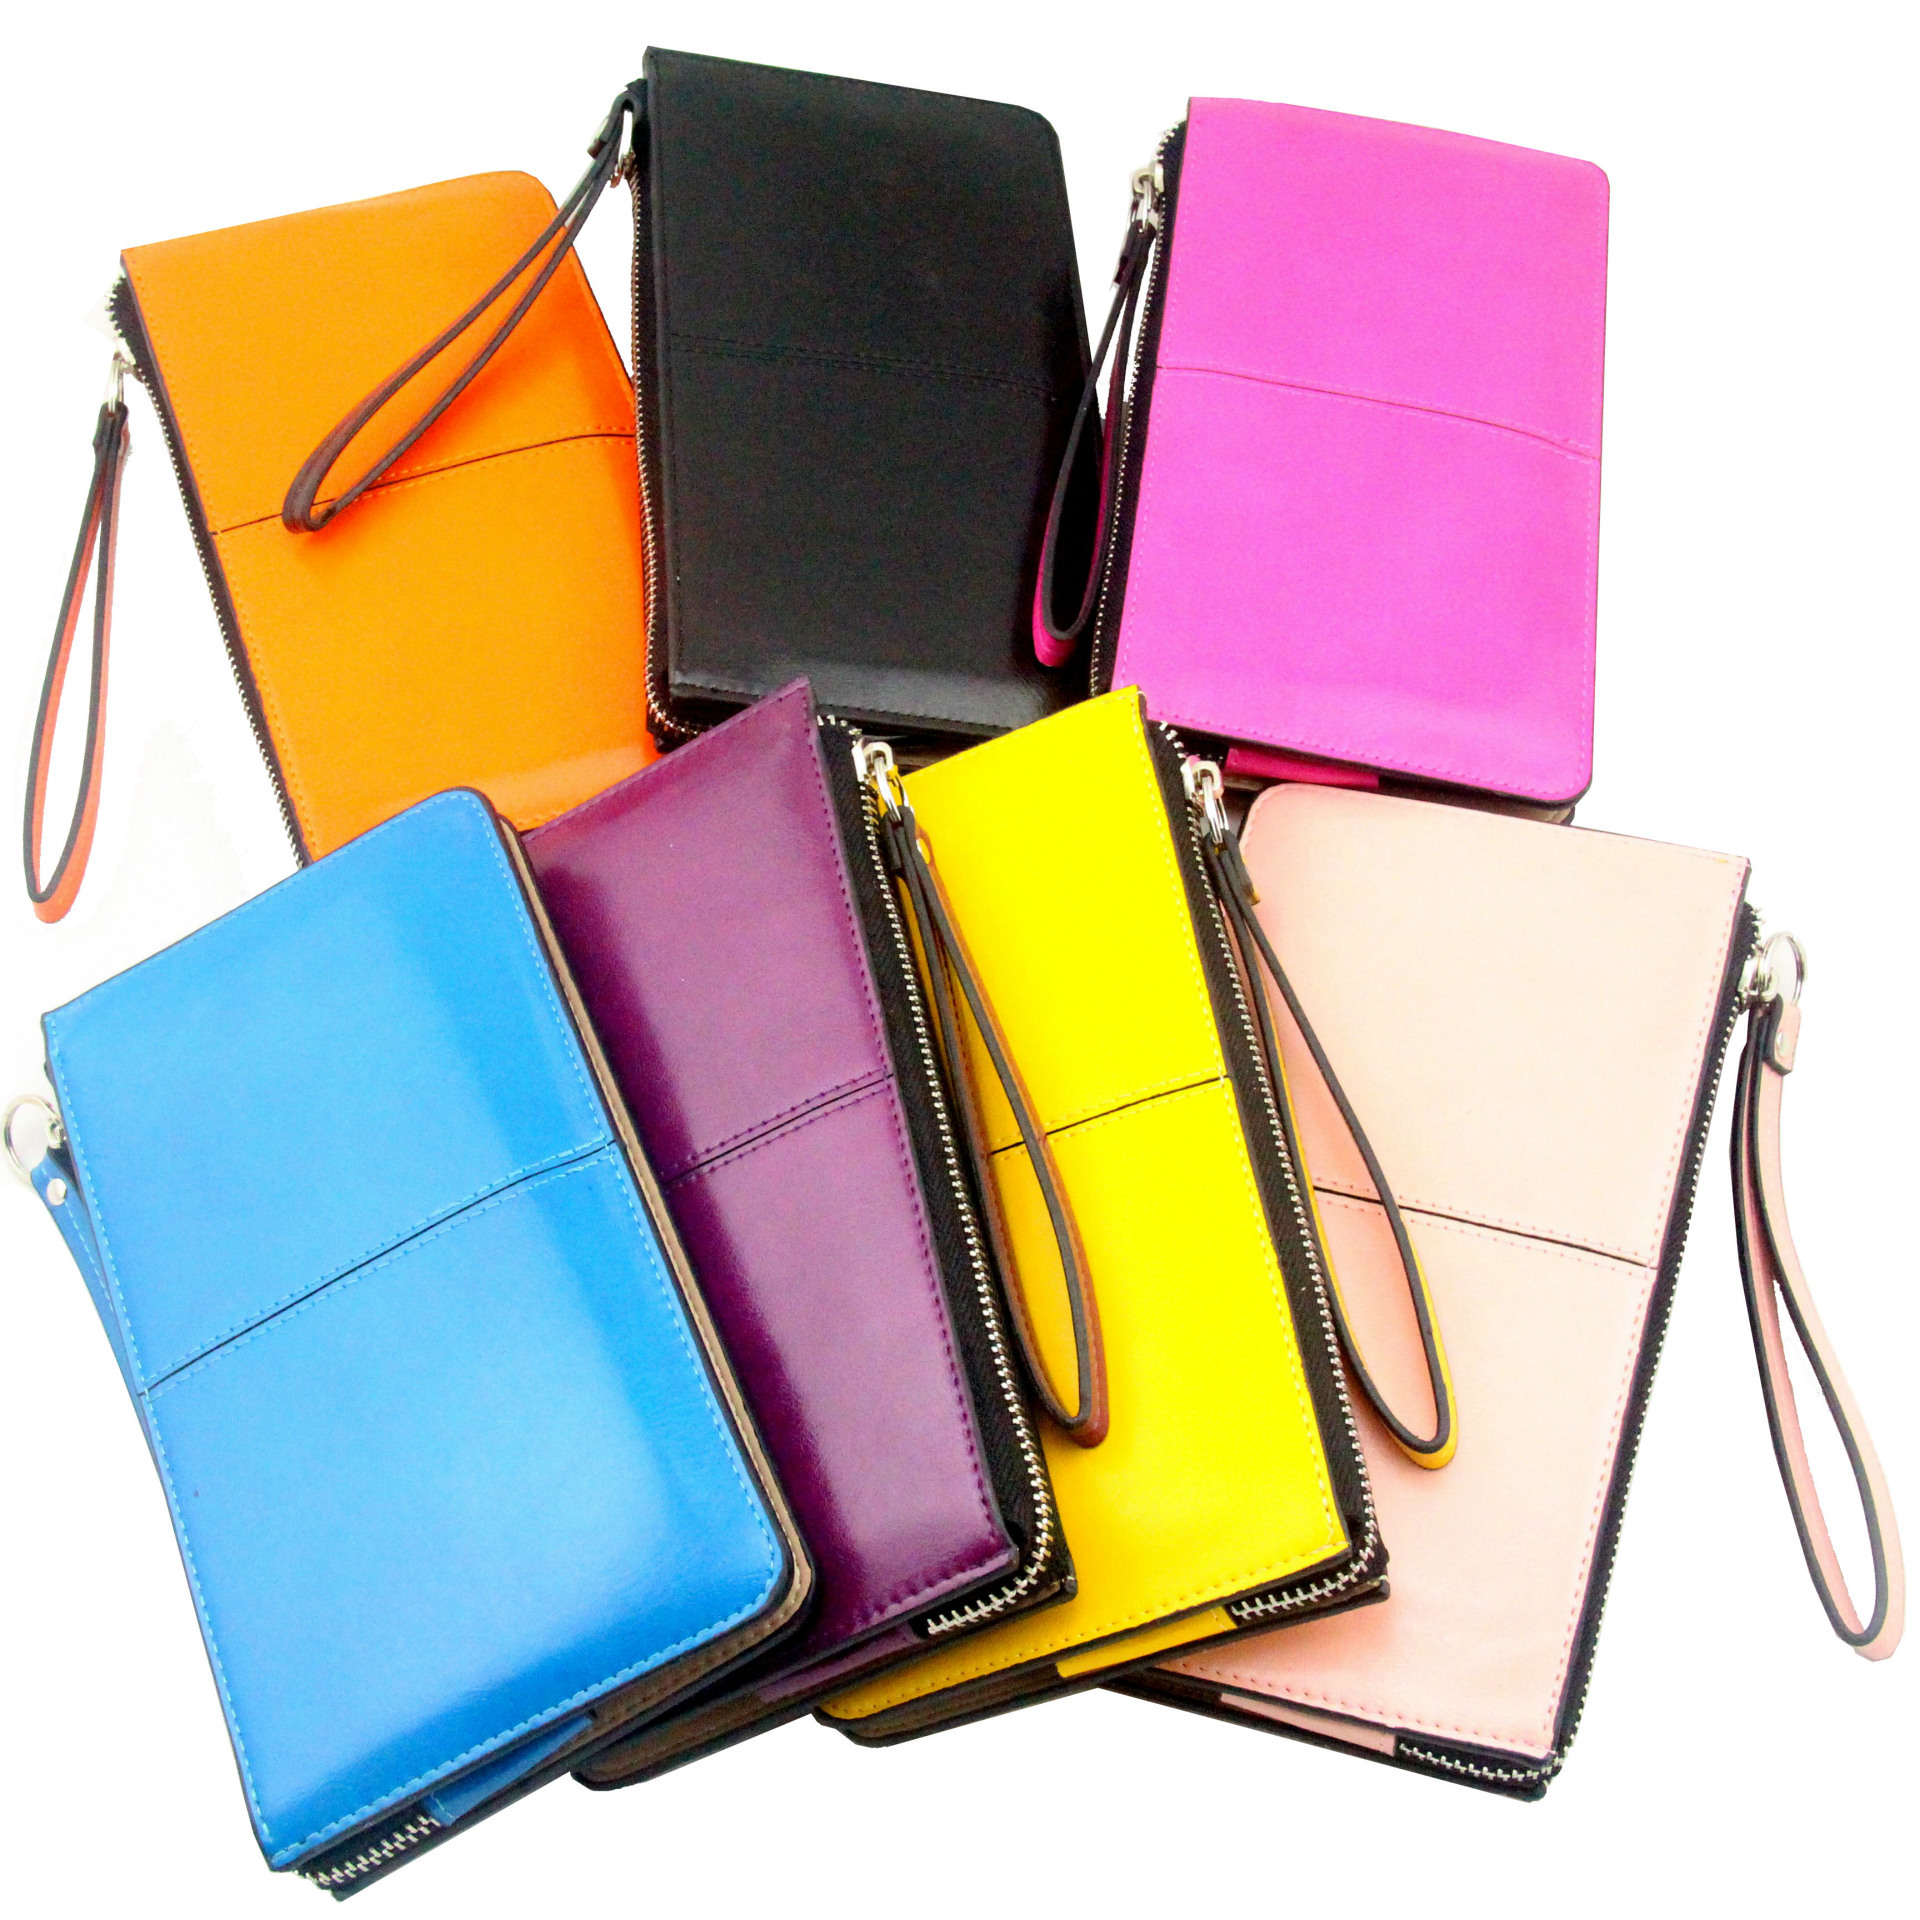 2015 The New French Prince Paris Head Layer Leather Long Wallet Purse High-grade Oil Hand Bag(China (Mainland))